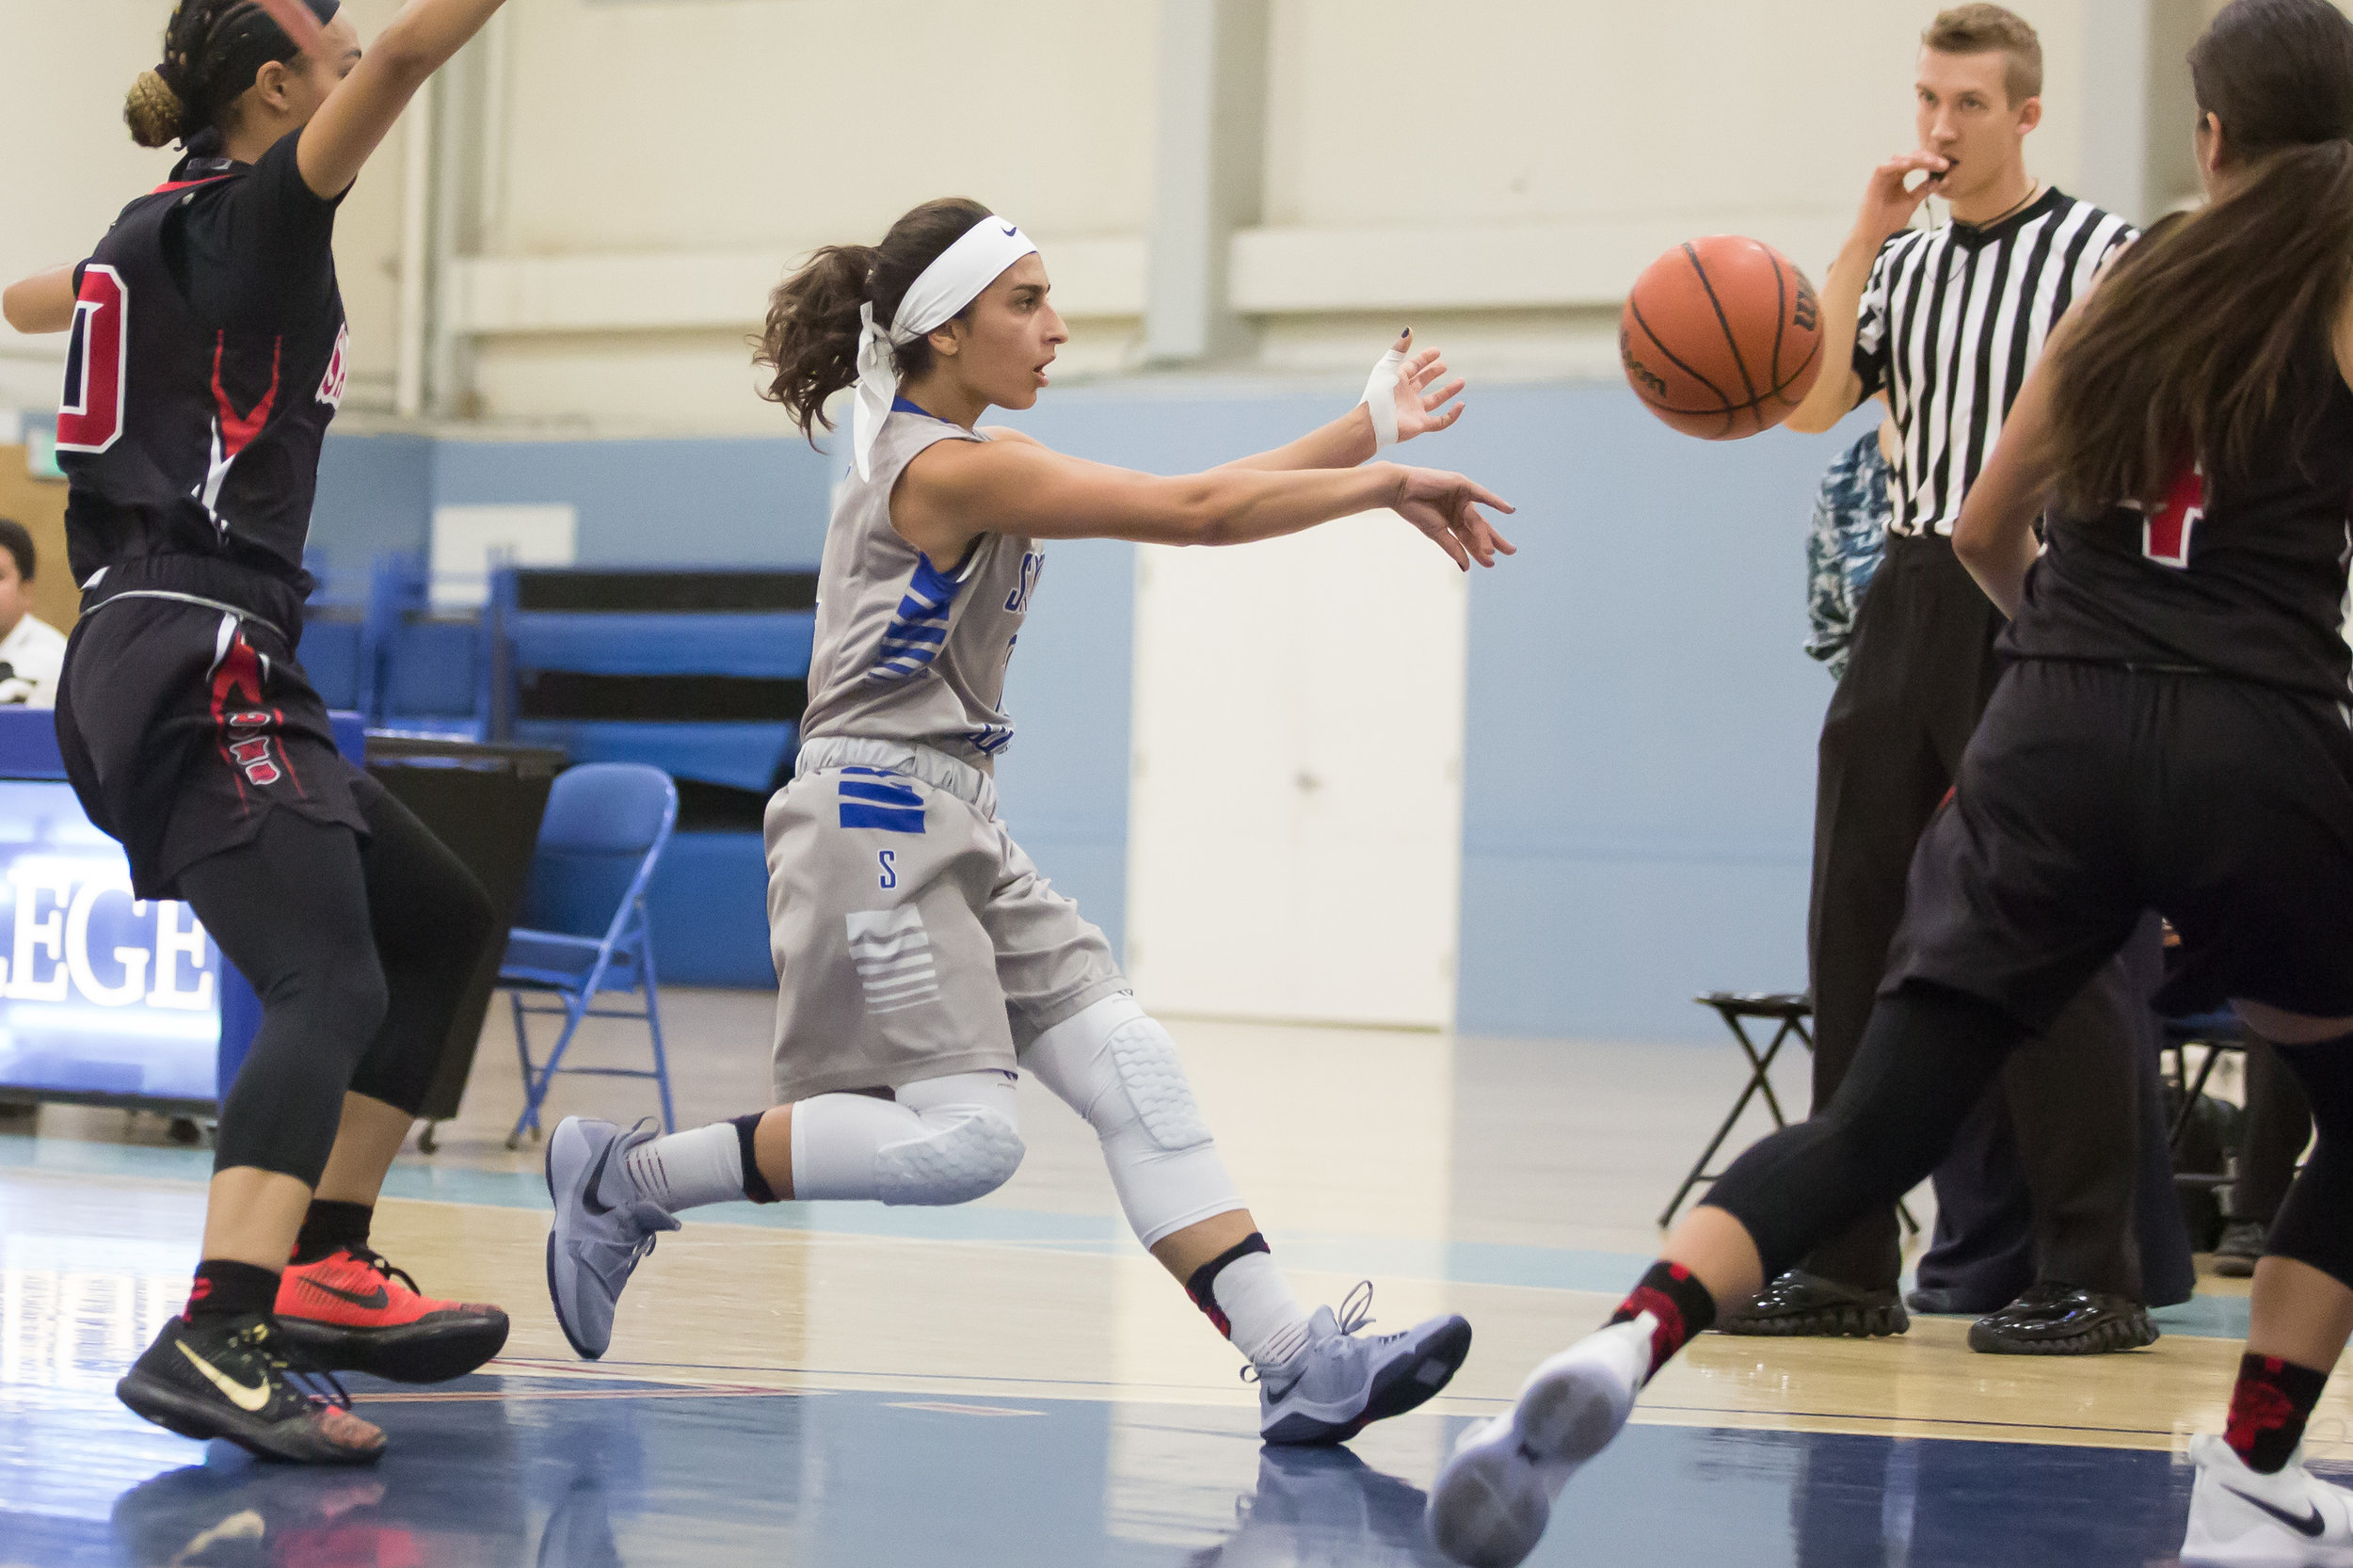 Guard Jessica Melamed (2) of Santa Monica College Corsairs  attempt to pass ball to other teammate. Santa Monica College Corsairs win the game 63-54 against Santa Ana College. On Saturday, November 4th, 2017 at the SMC Pavilion on the Santa Monica College Main Campus in Santa Monica, California. (Photo by Yuki Iwamura)